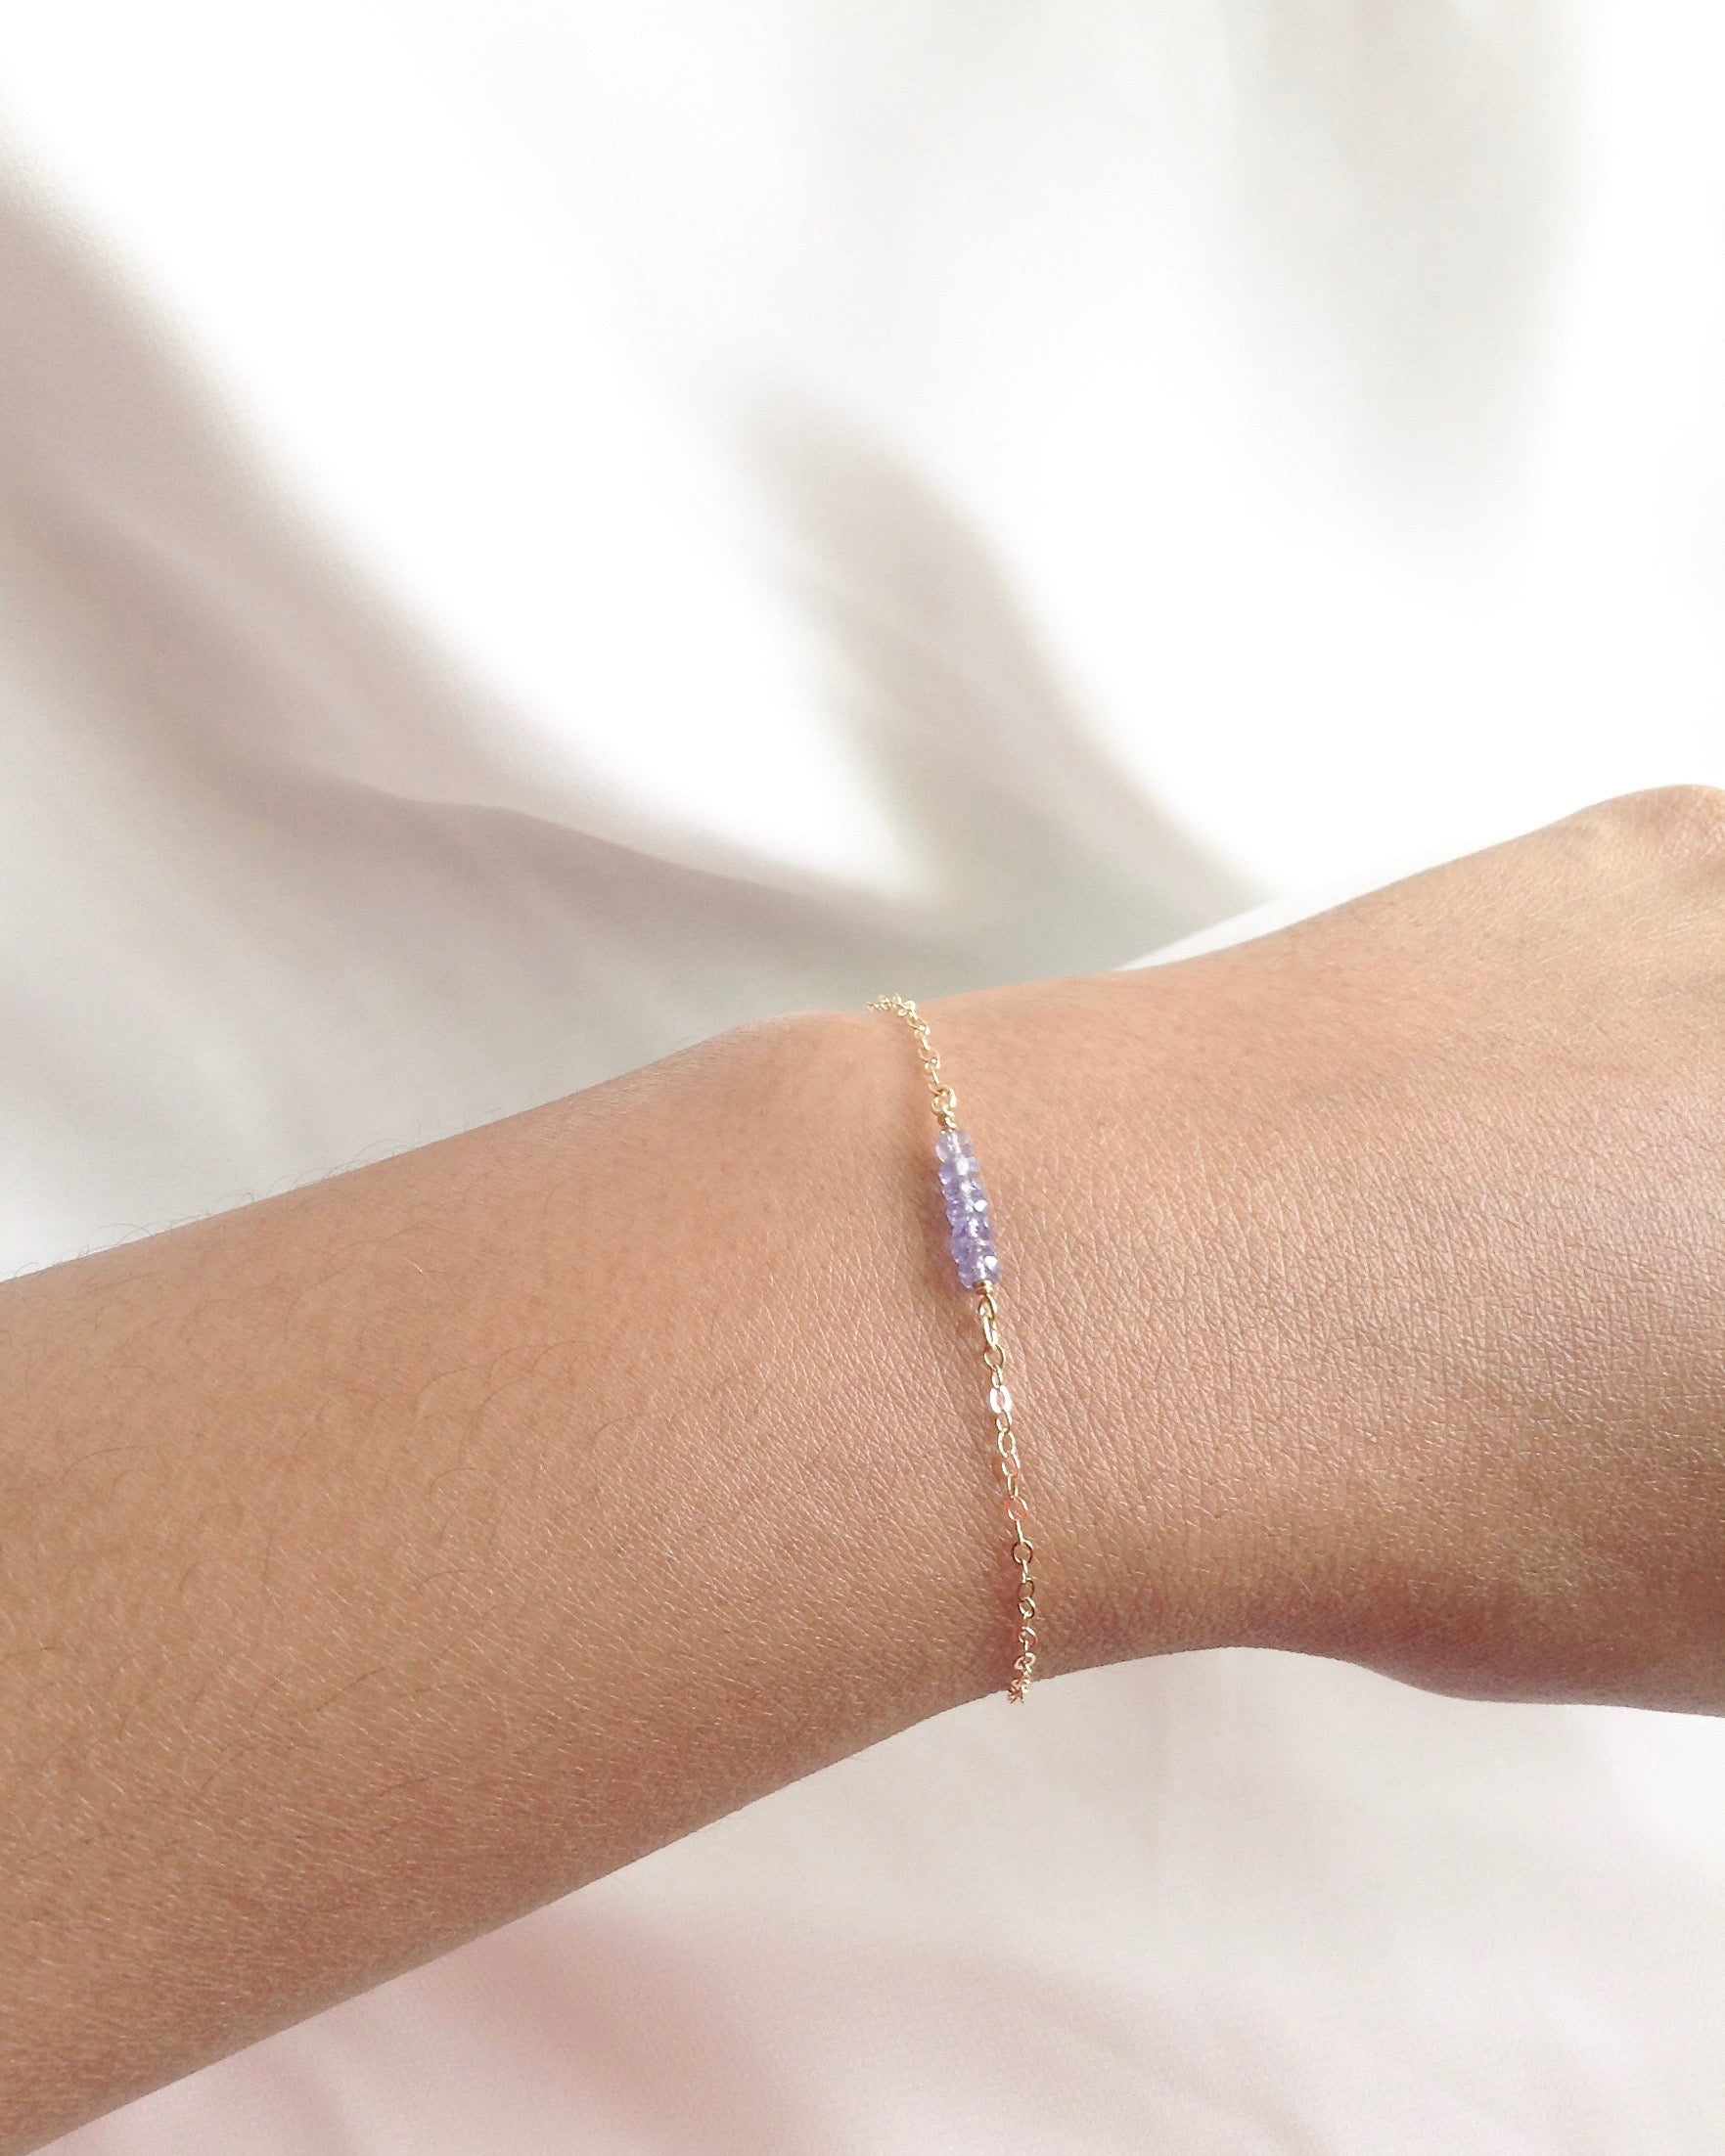 Genuine Tanzanite Bracelet | Minimalist Gemstone Jewelry | IB Jewelry